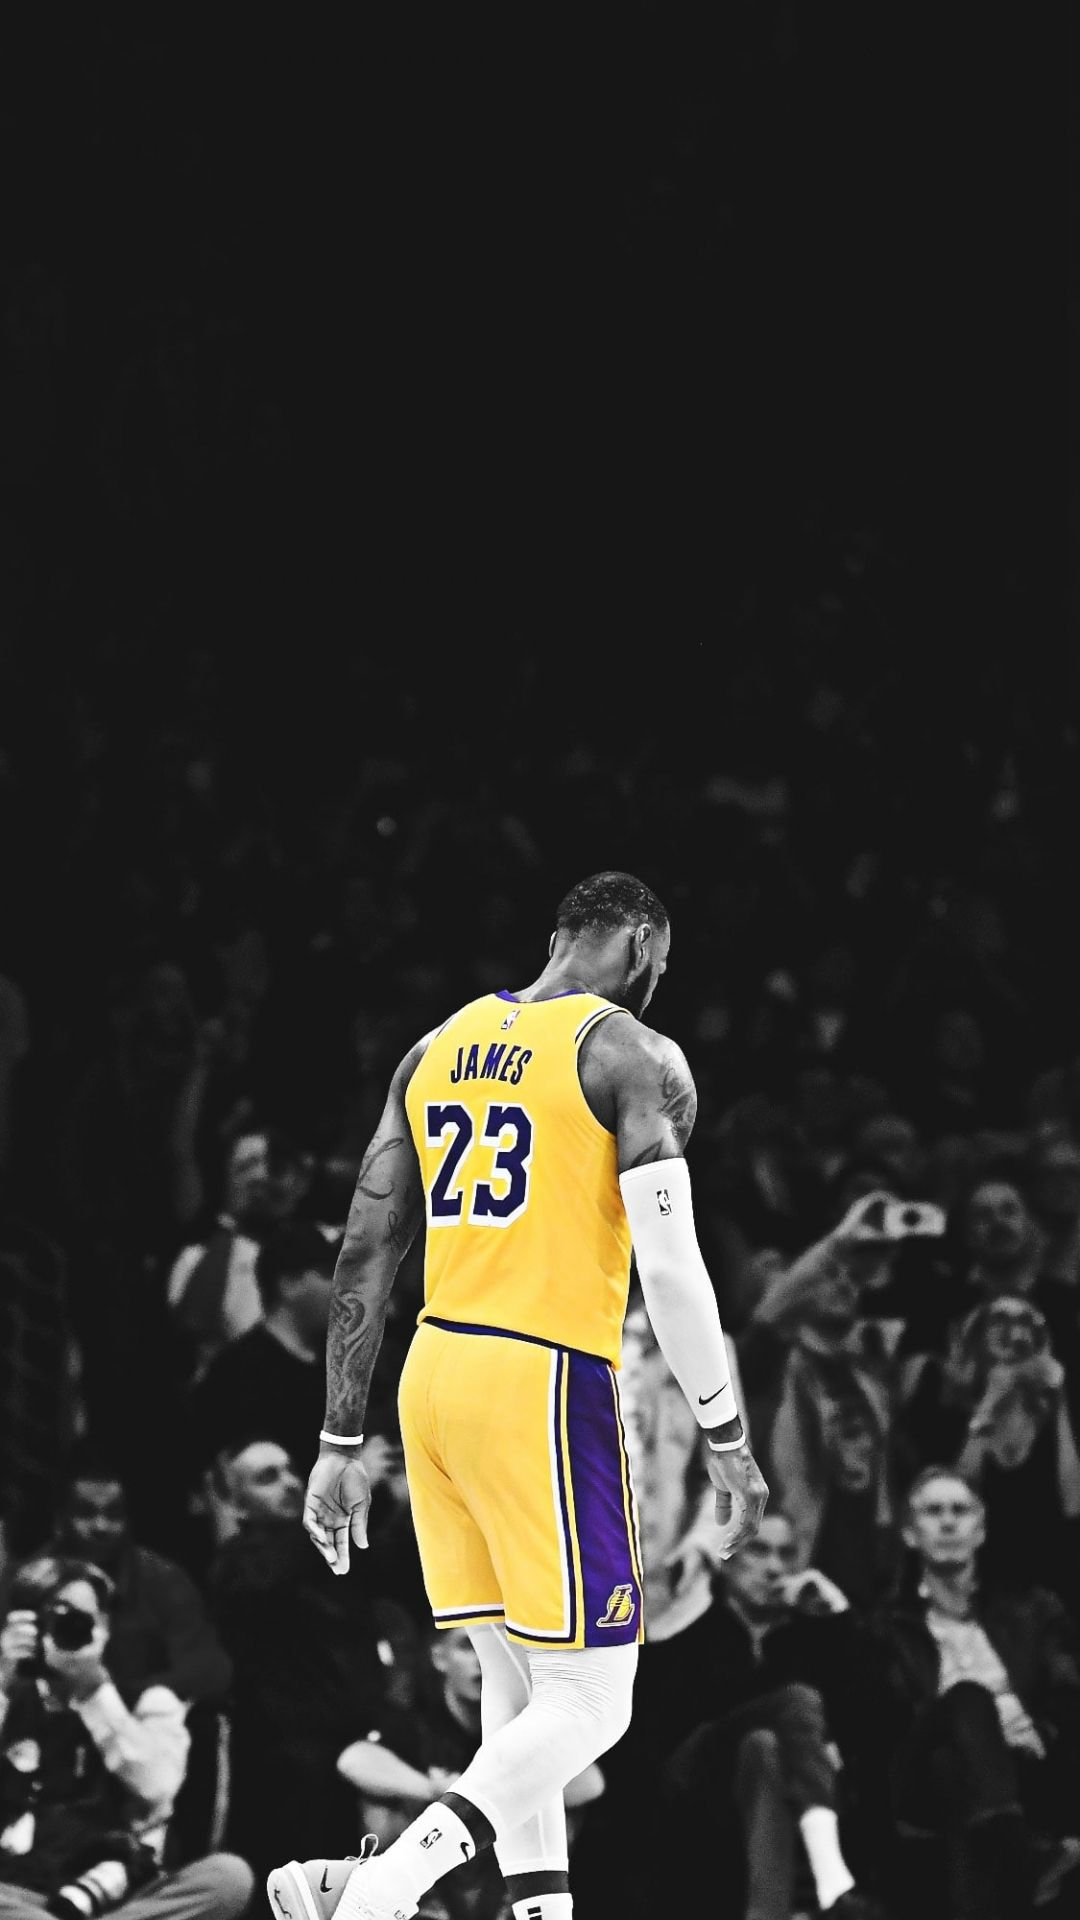 Lakers Lebron Background Image On High Quality Wallpaper On Snowman Wallpapers Com Iphone Andro In 2020 Lebron James Lakers Lebron James Wallpapers Lakers Wallpaper